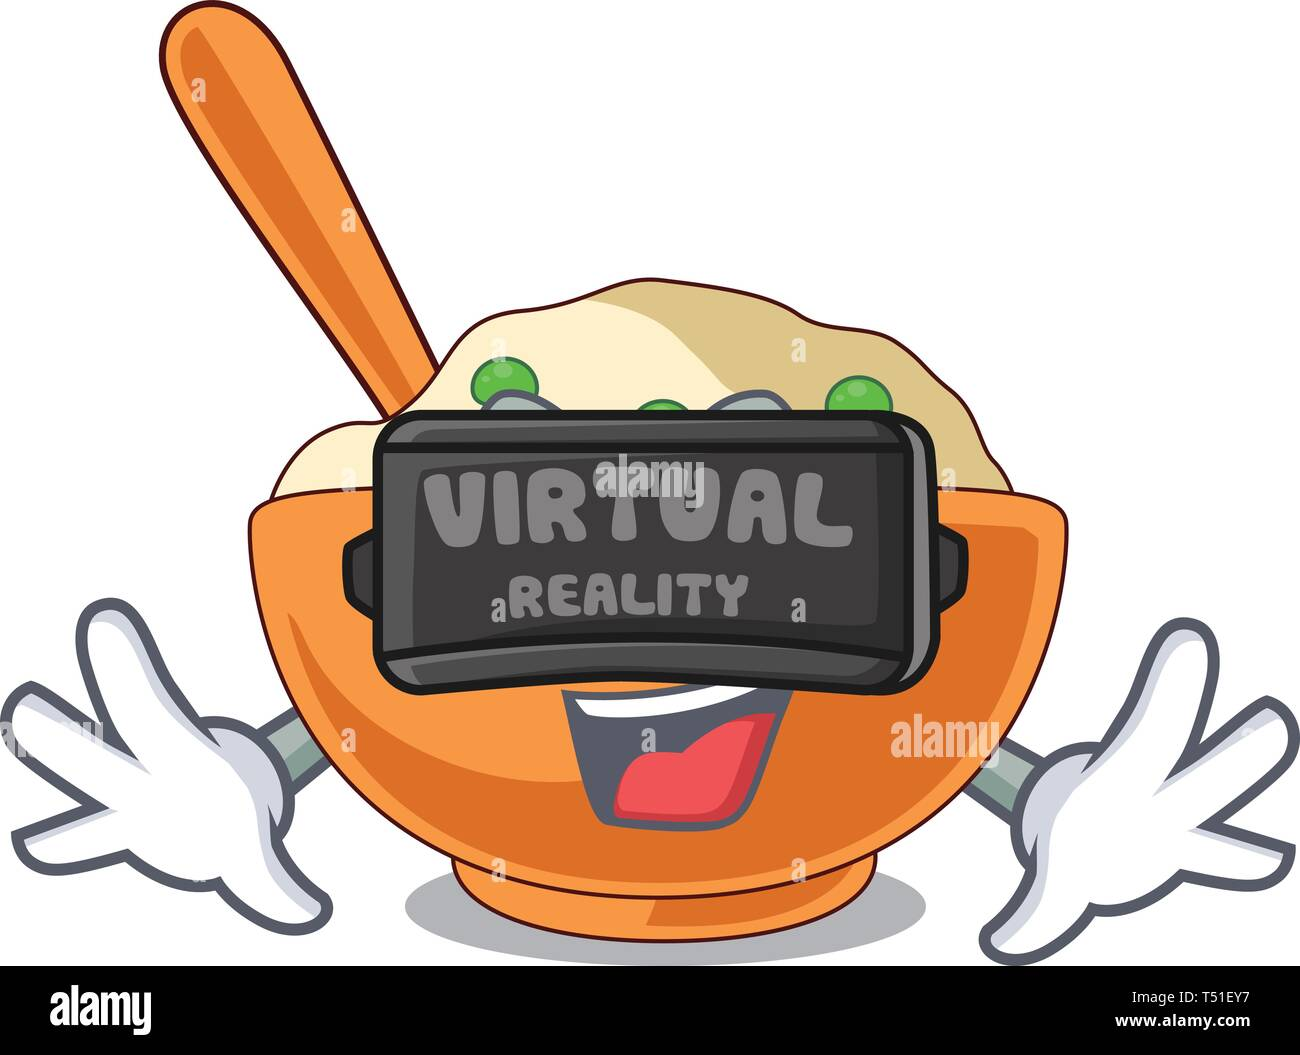 Virtual reality mashed potato in the shape mascot - Stock Image